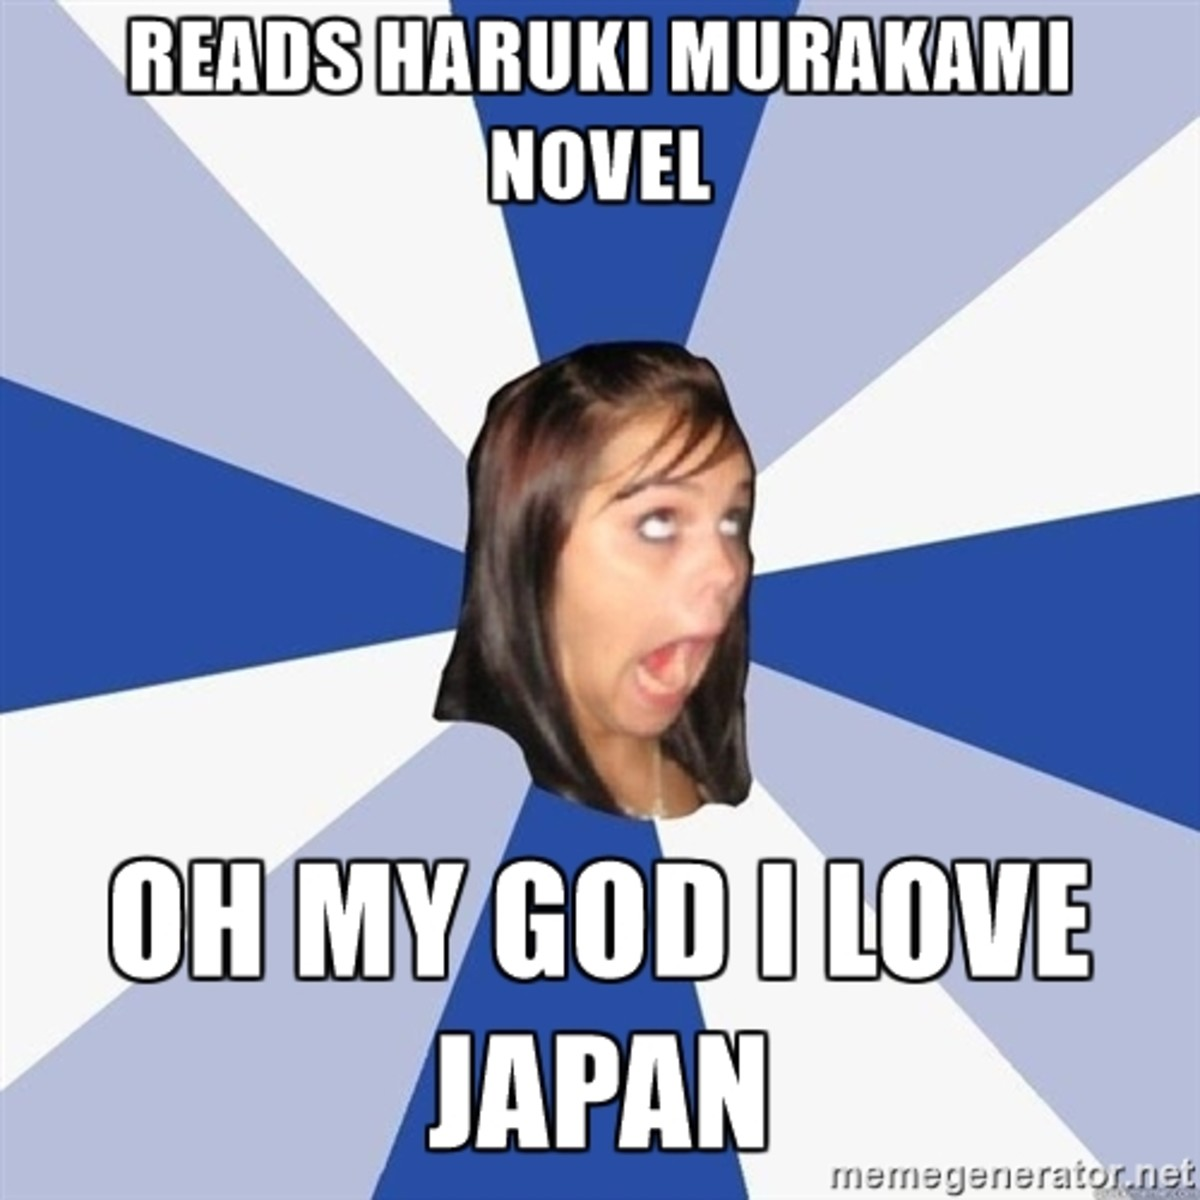 Does Murakami touch the Japanese psyche, or is it just a Western thing?